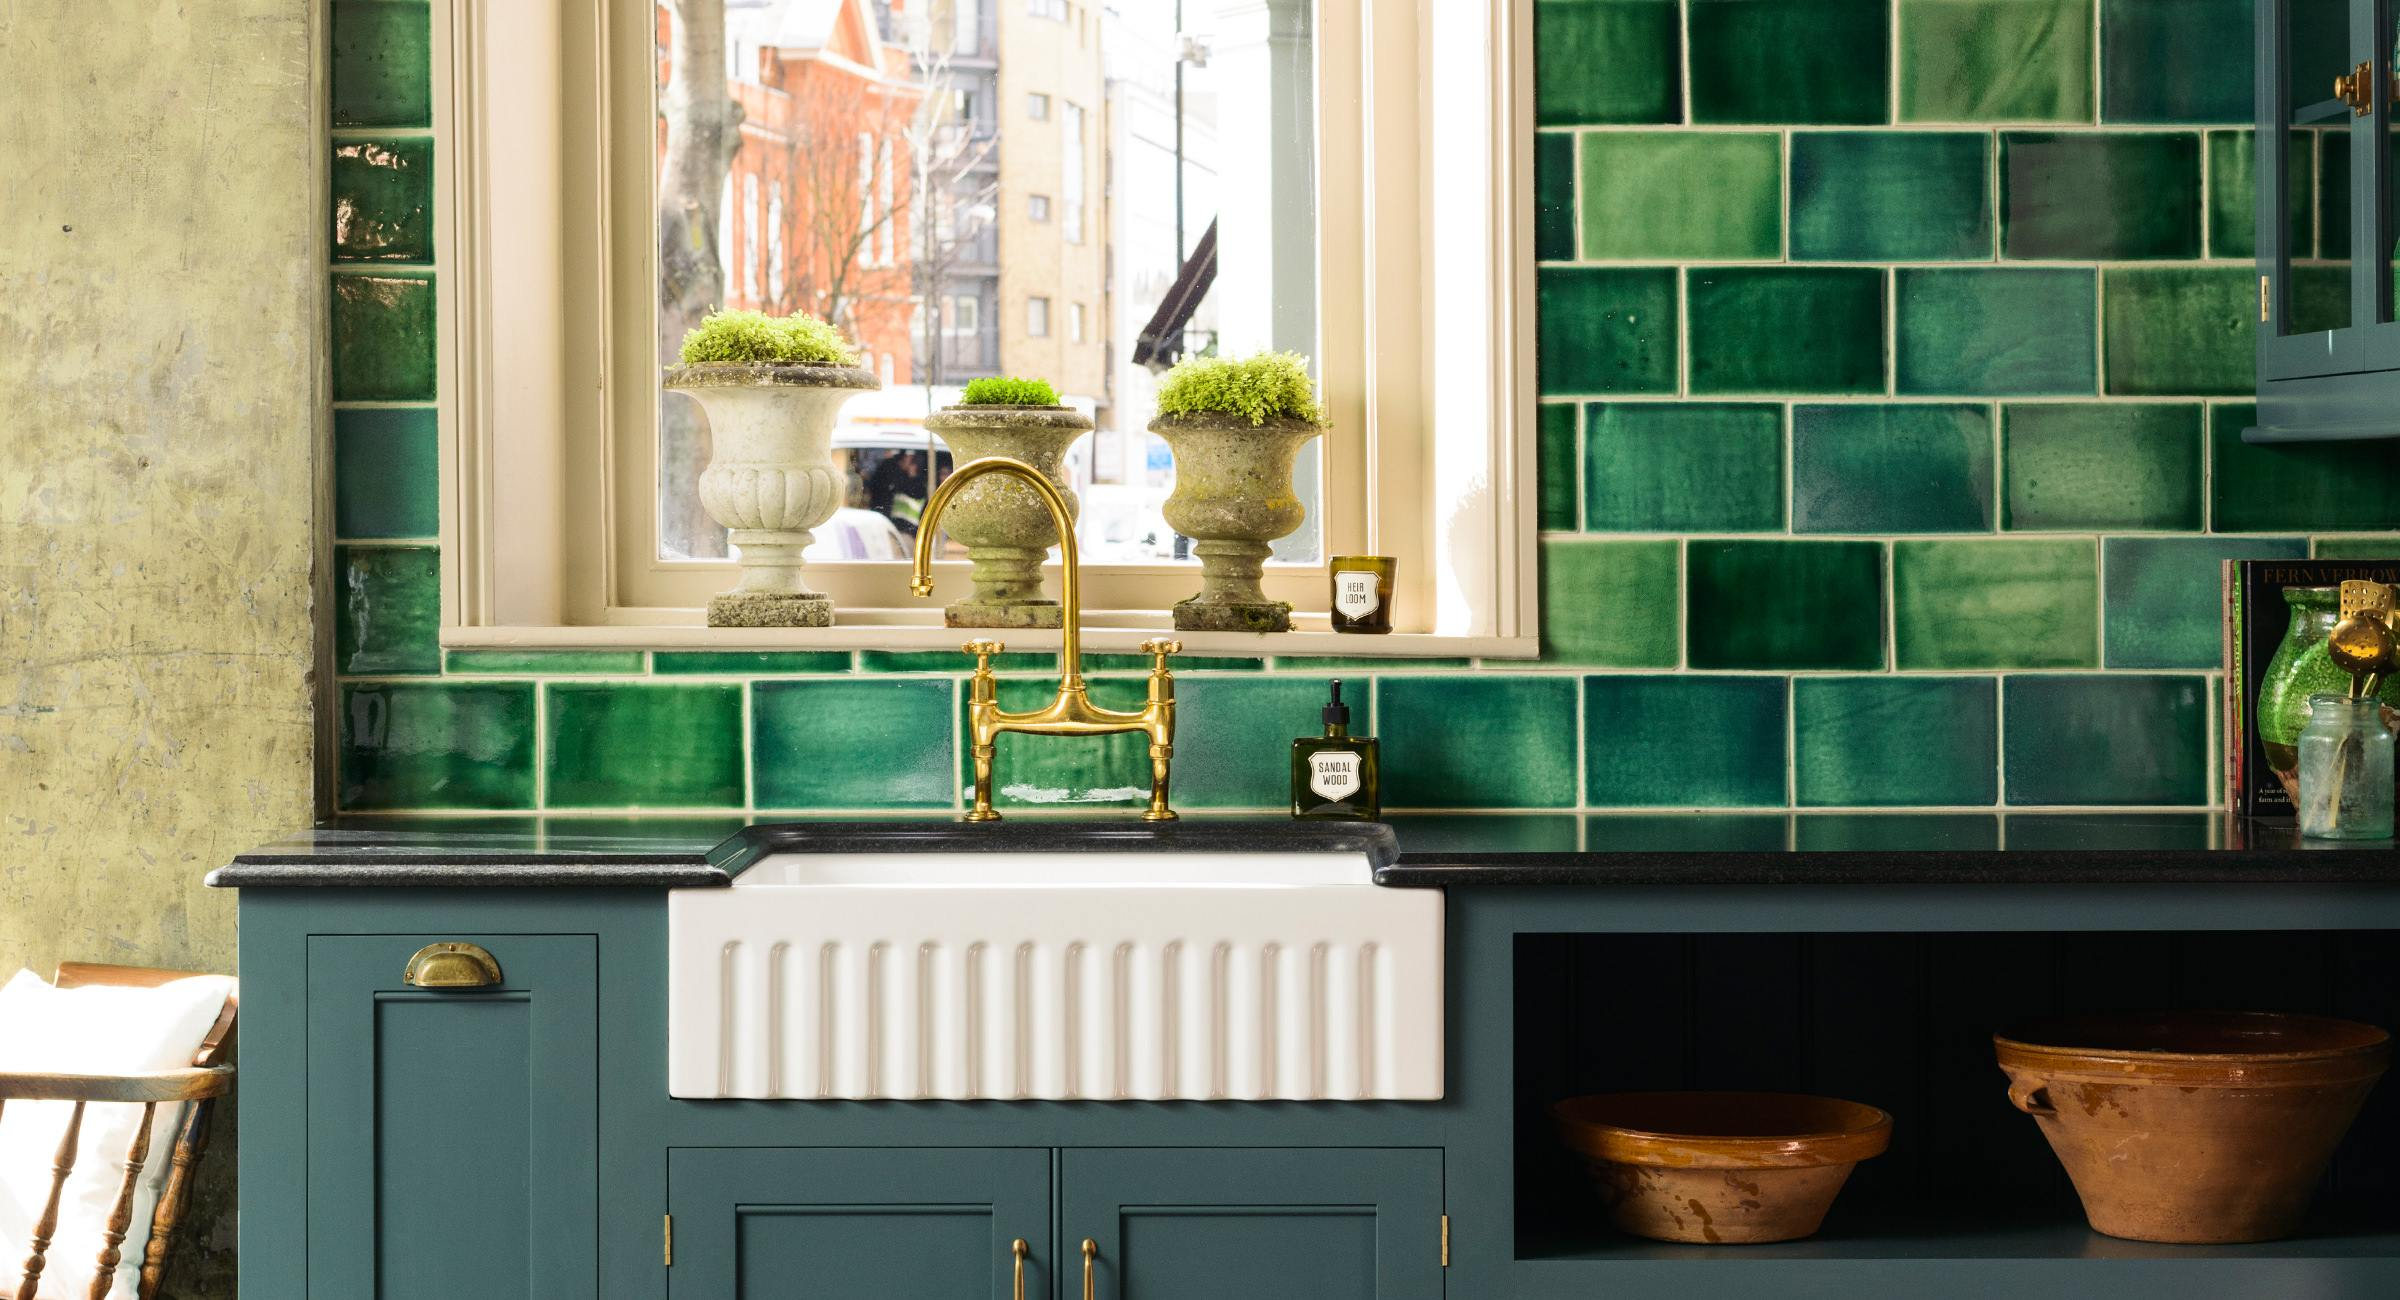 Kitchen Tiles London devol emerald green london tiles | devol kitchens